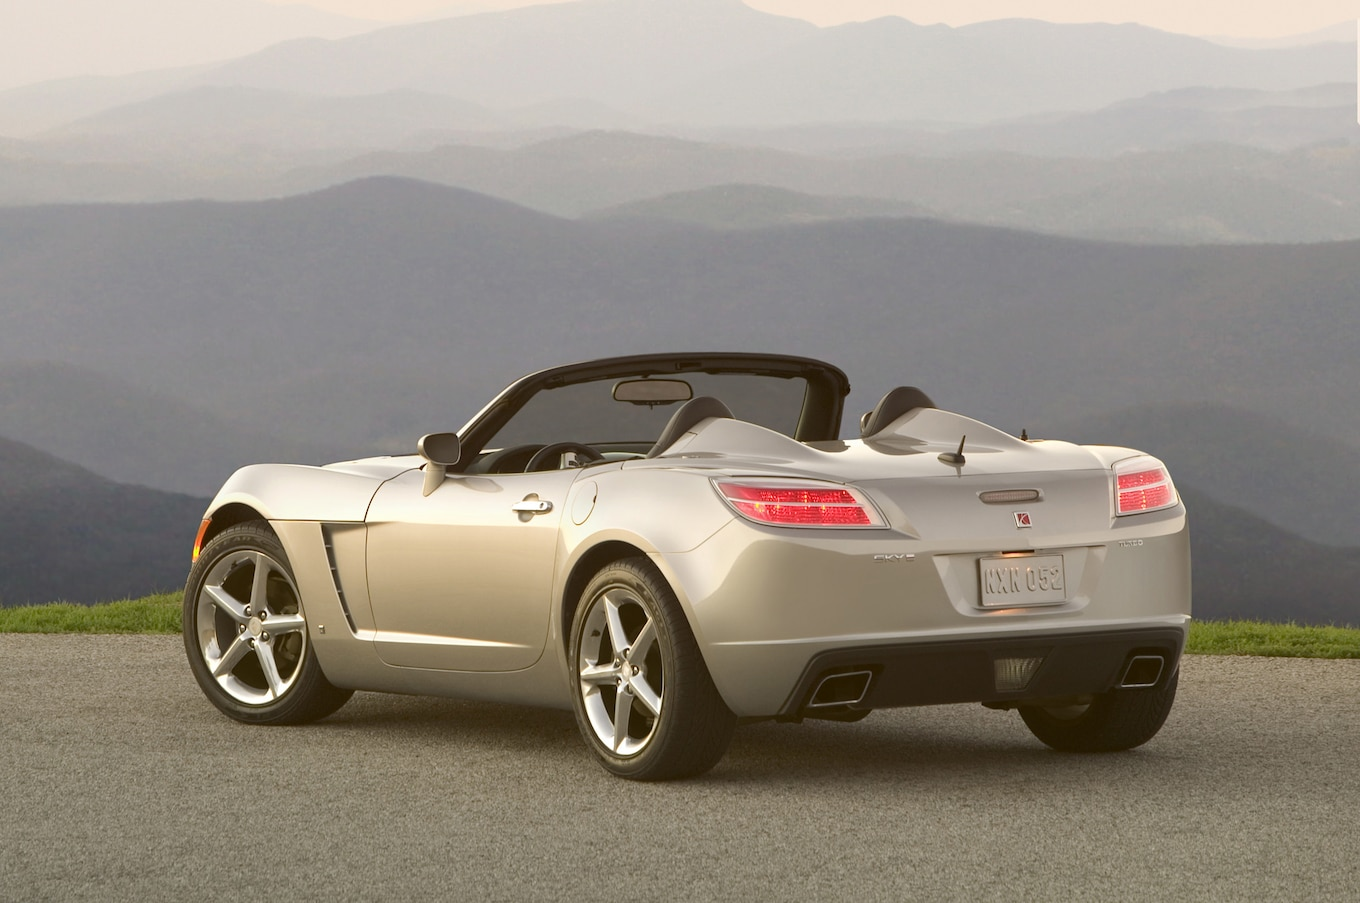 hight resolution of 2007 saturn sky reviews research sky prices specs motortrend 2007 saturn sky engine diagram